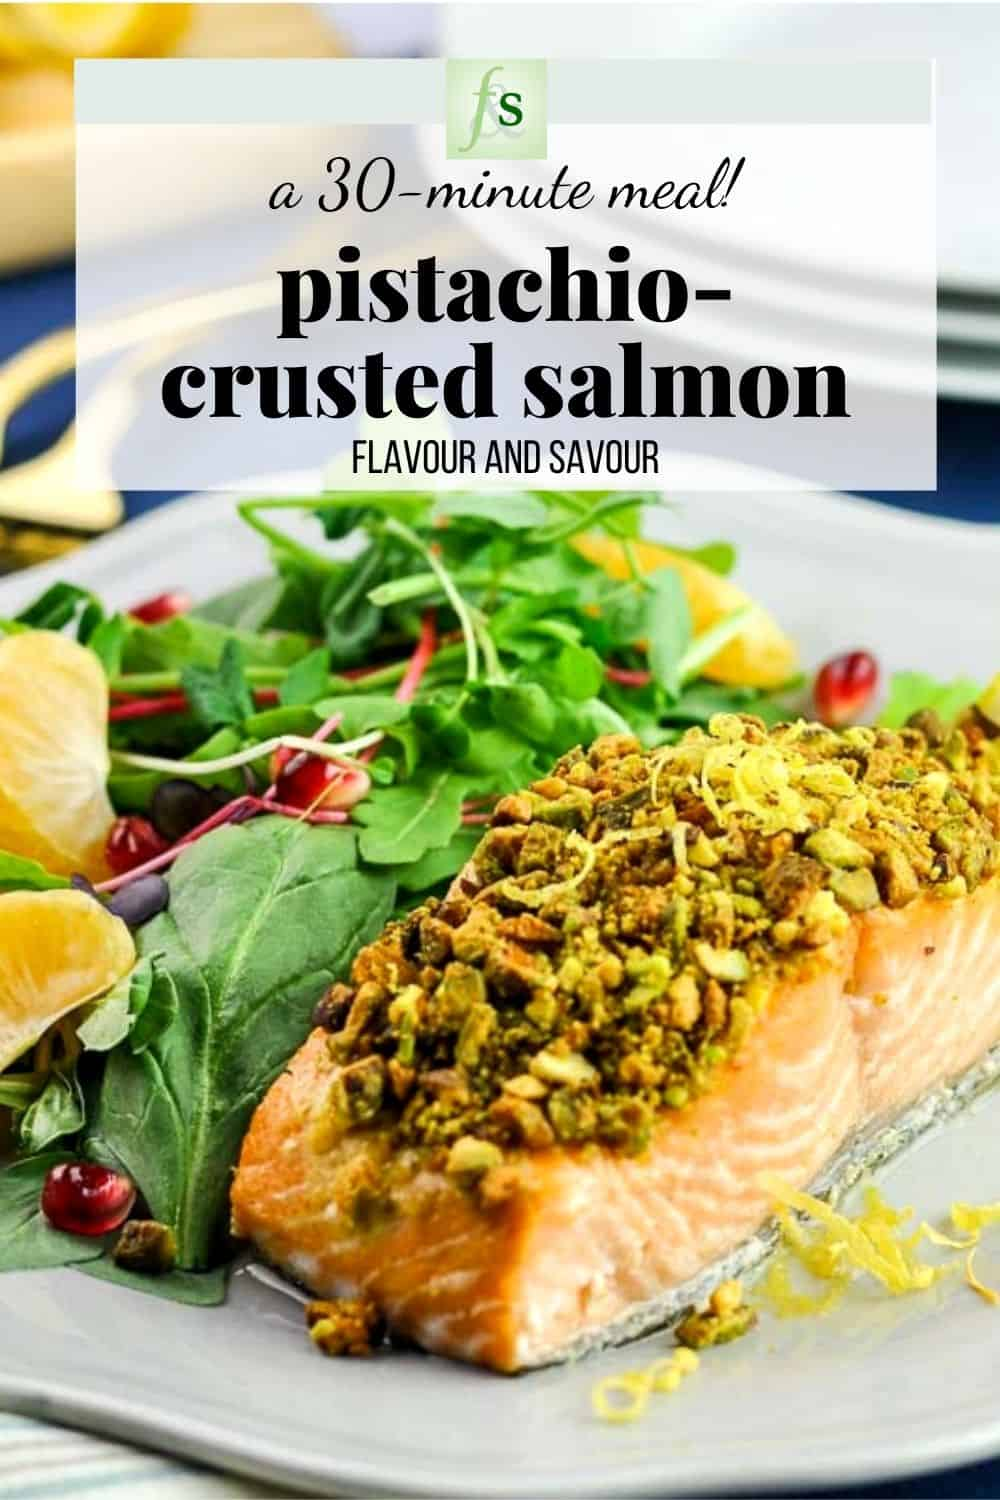 a fillet of pistachio-crusted salmon aon a plate with a side salad